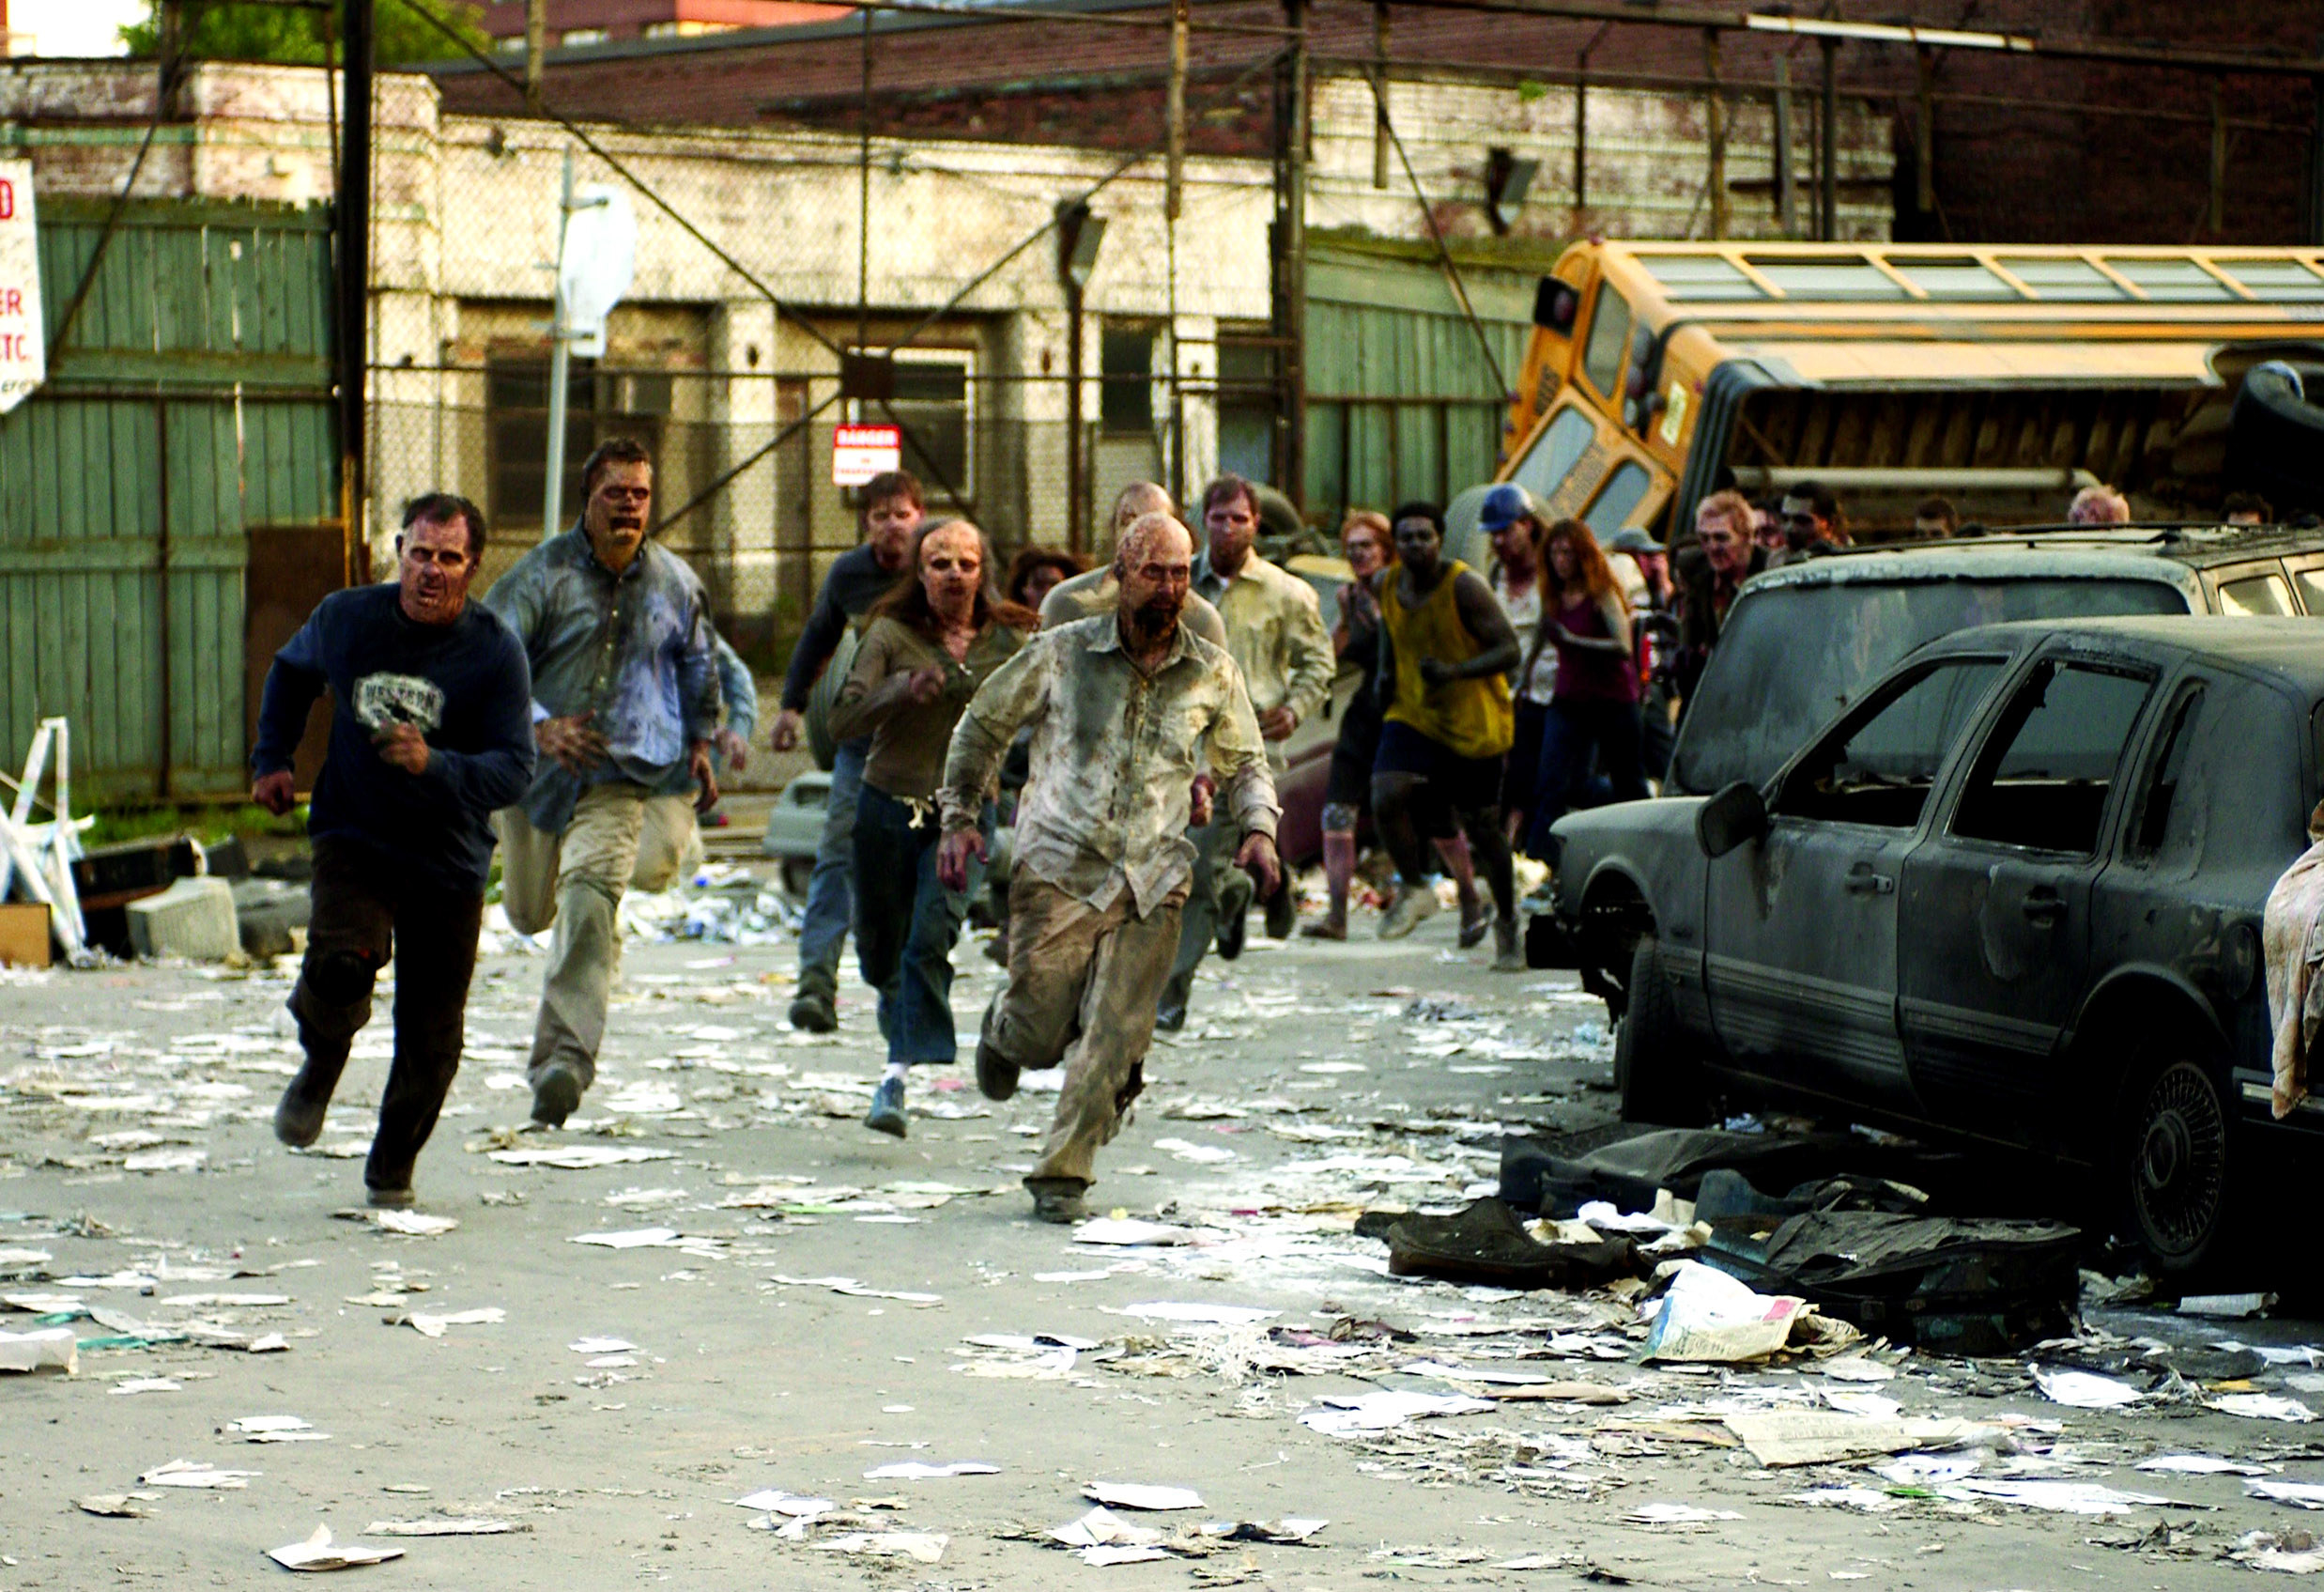 zombies running towards people in the movie dawn of the dead